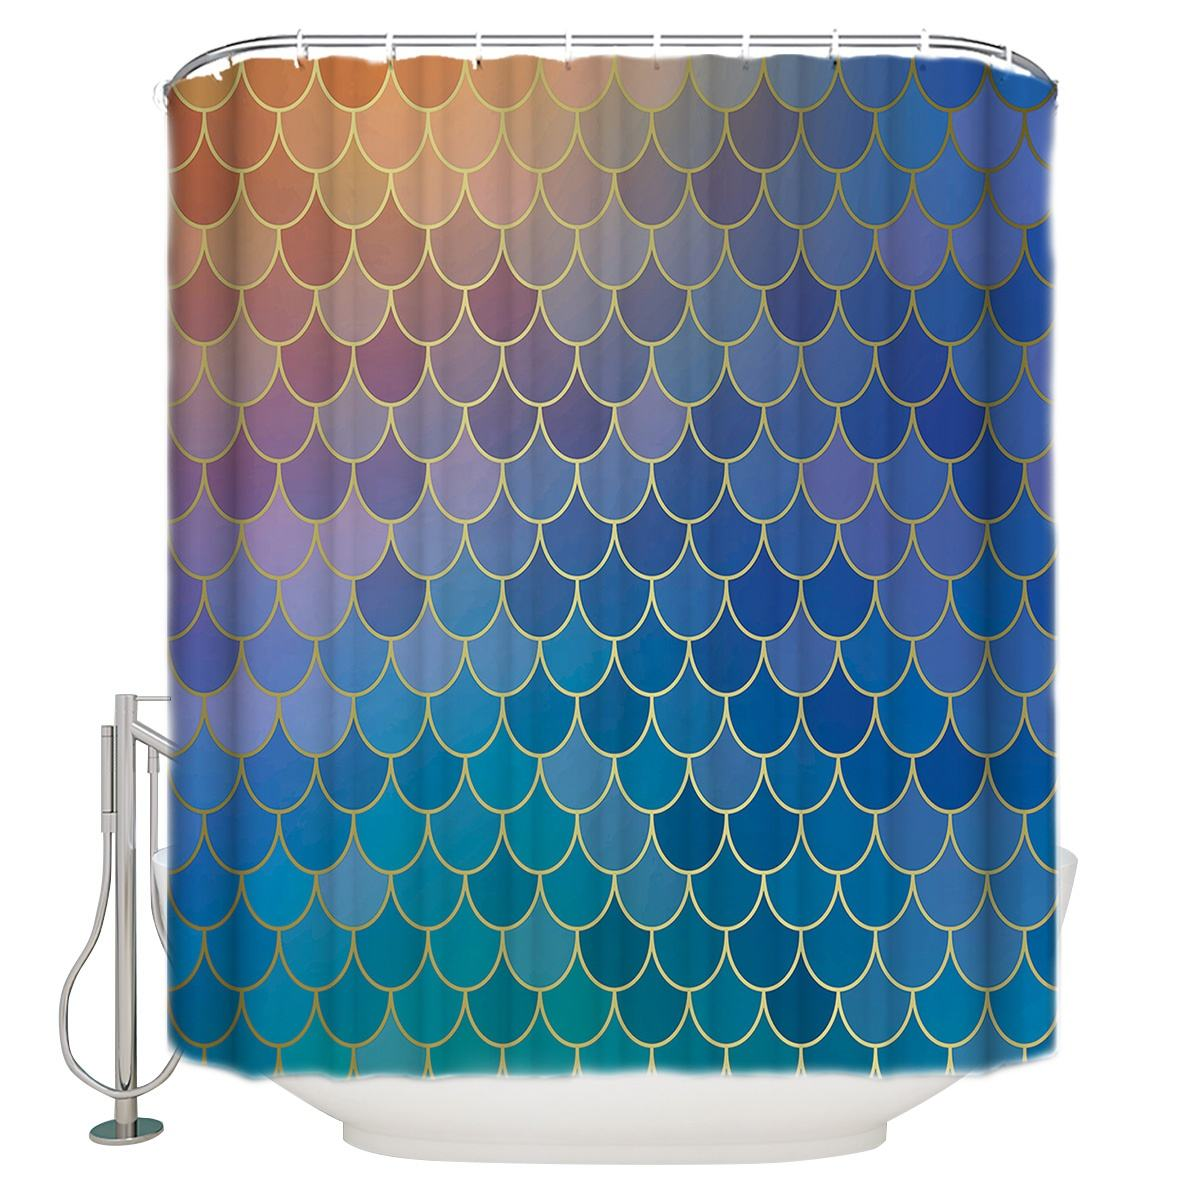 3D Mermaid Scales Shower Curtain Fish Scale Mermaid Geometric Tail Ocean Theme Bathroom waterproof shower curtains